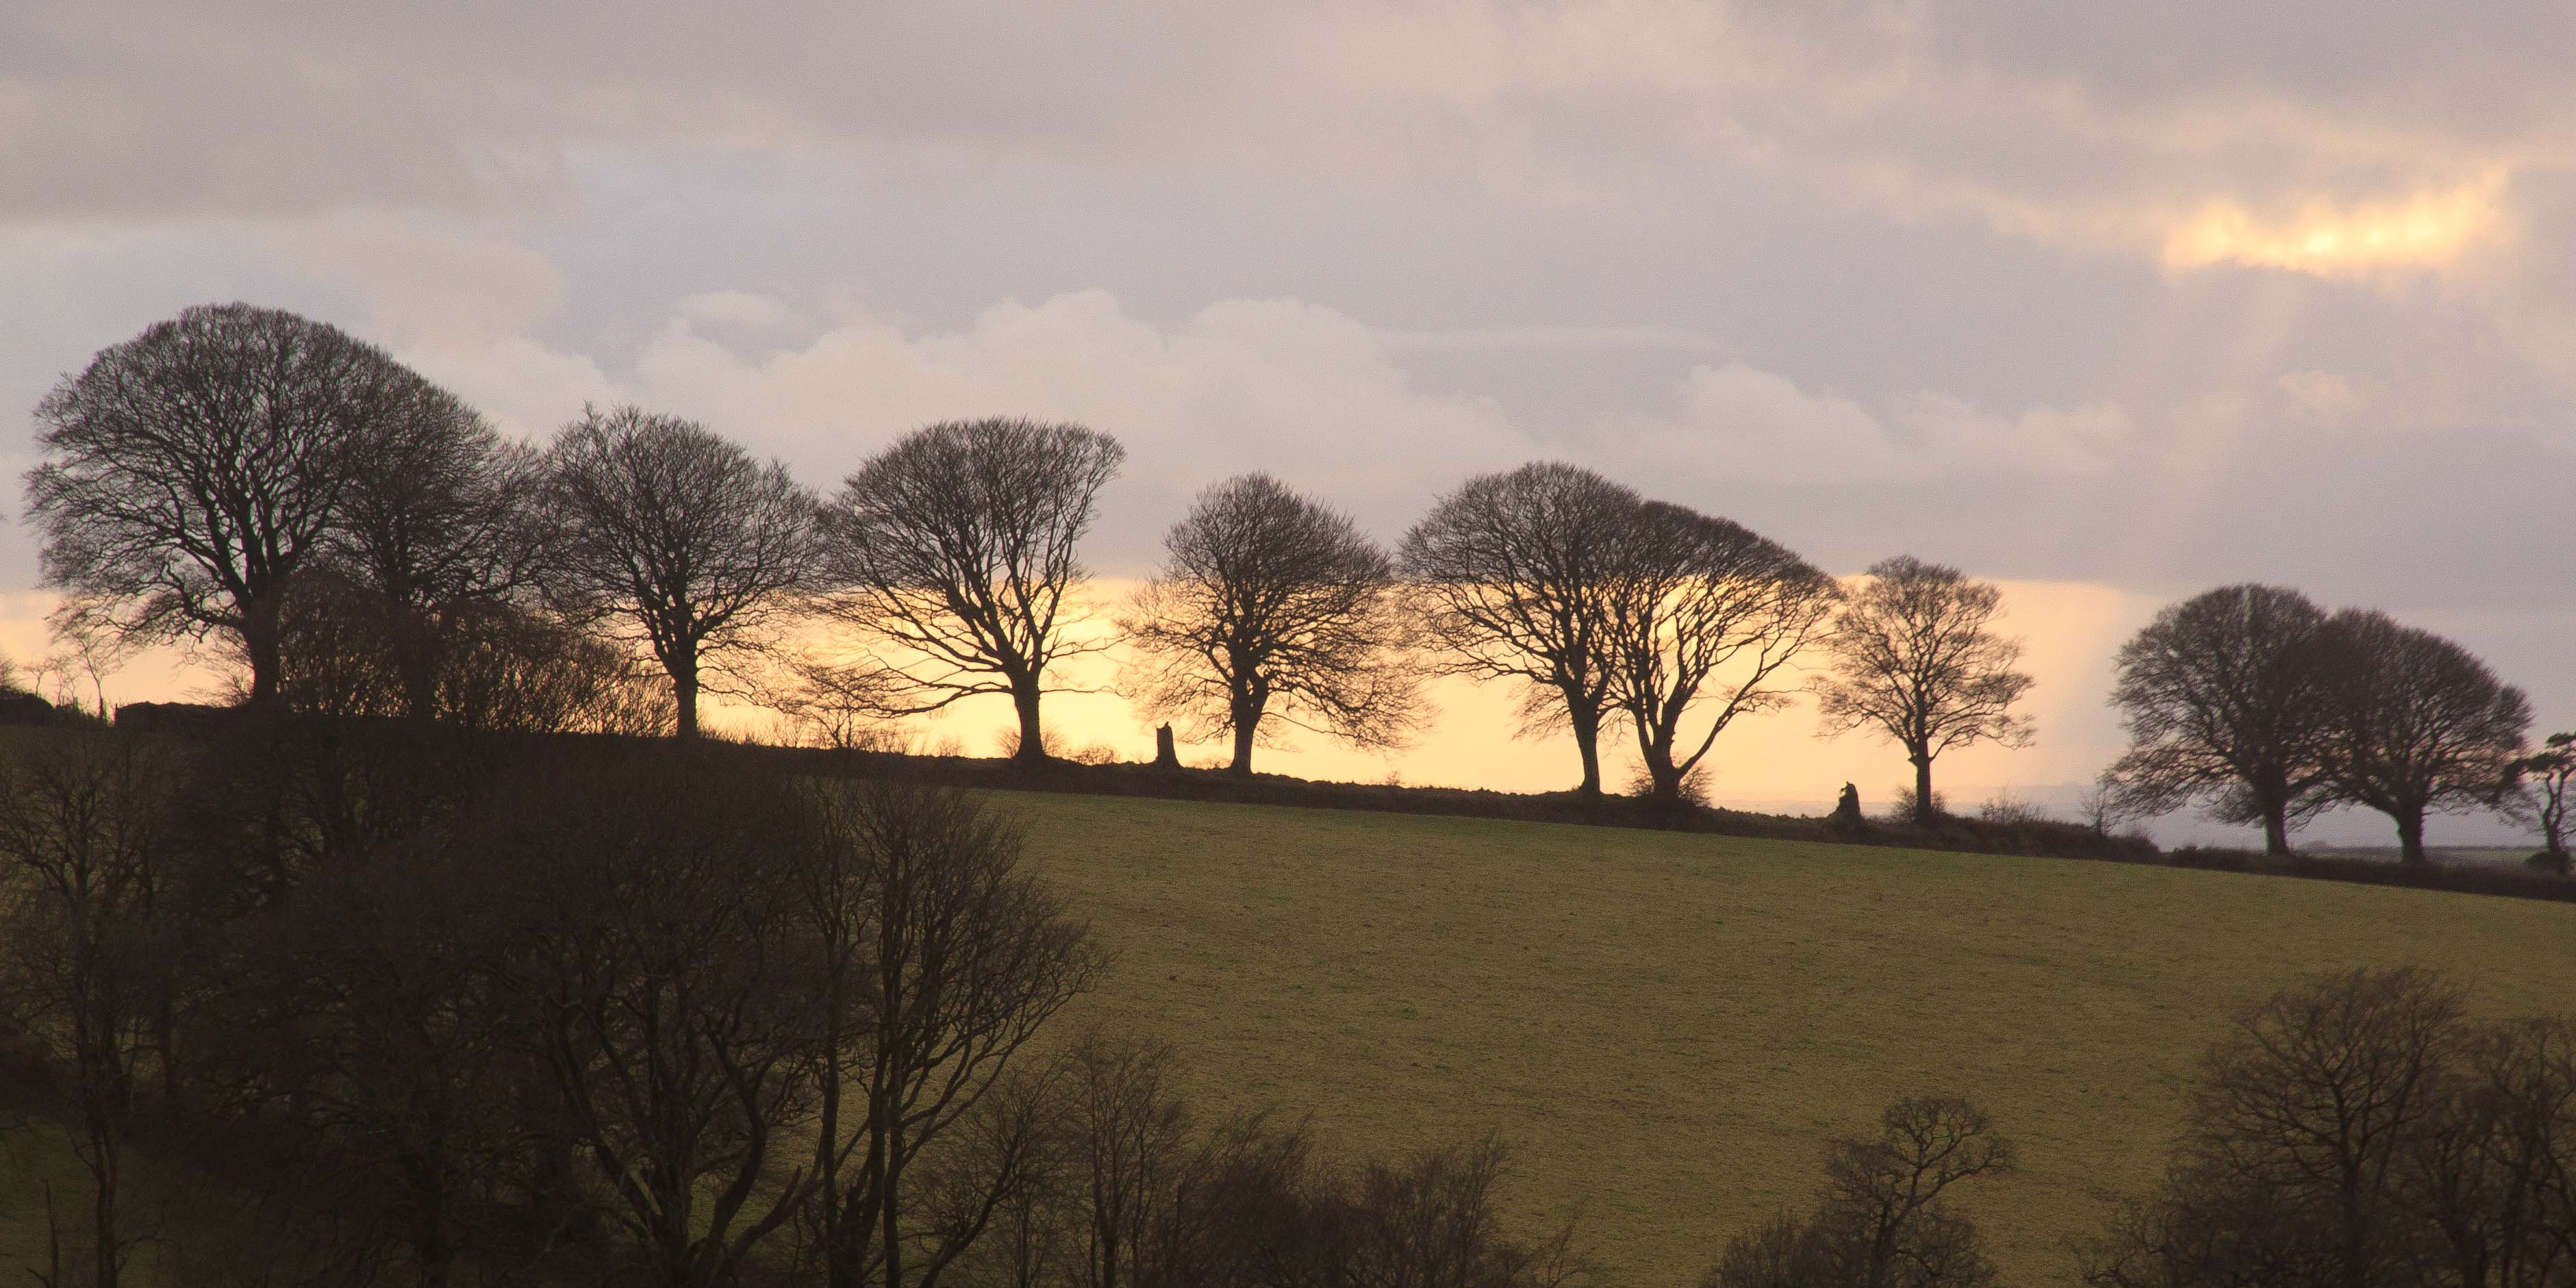 Trees silhouetted against the setting sun near Arlington Court, North Devon. Jan 2015